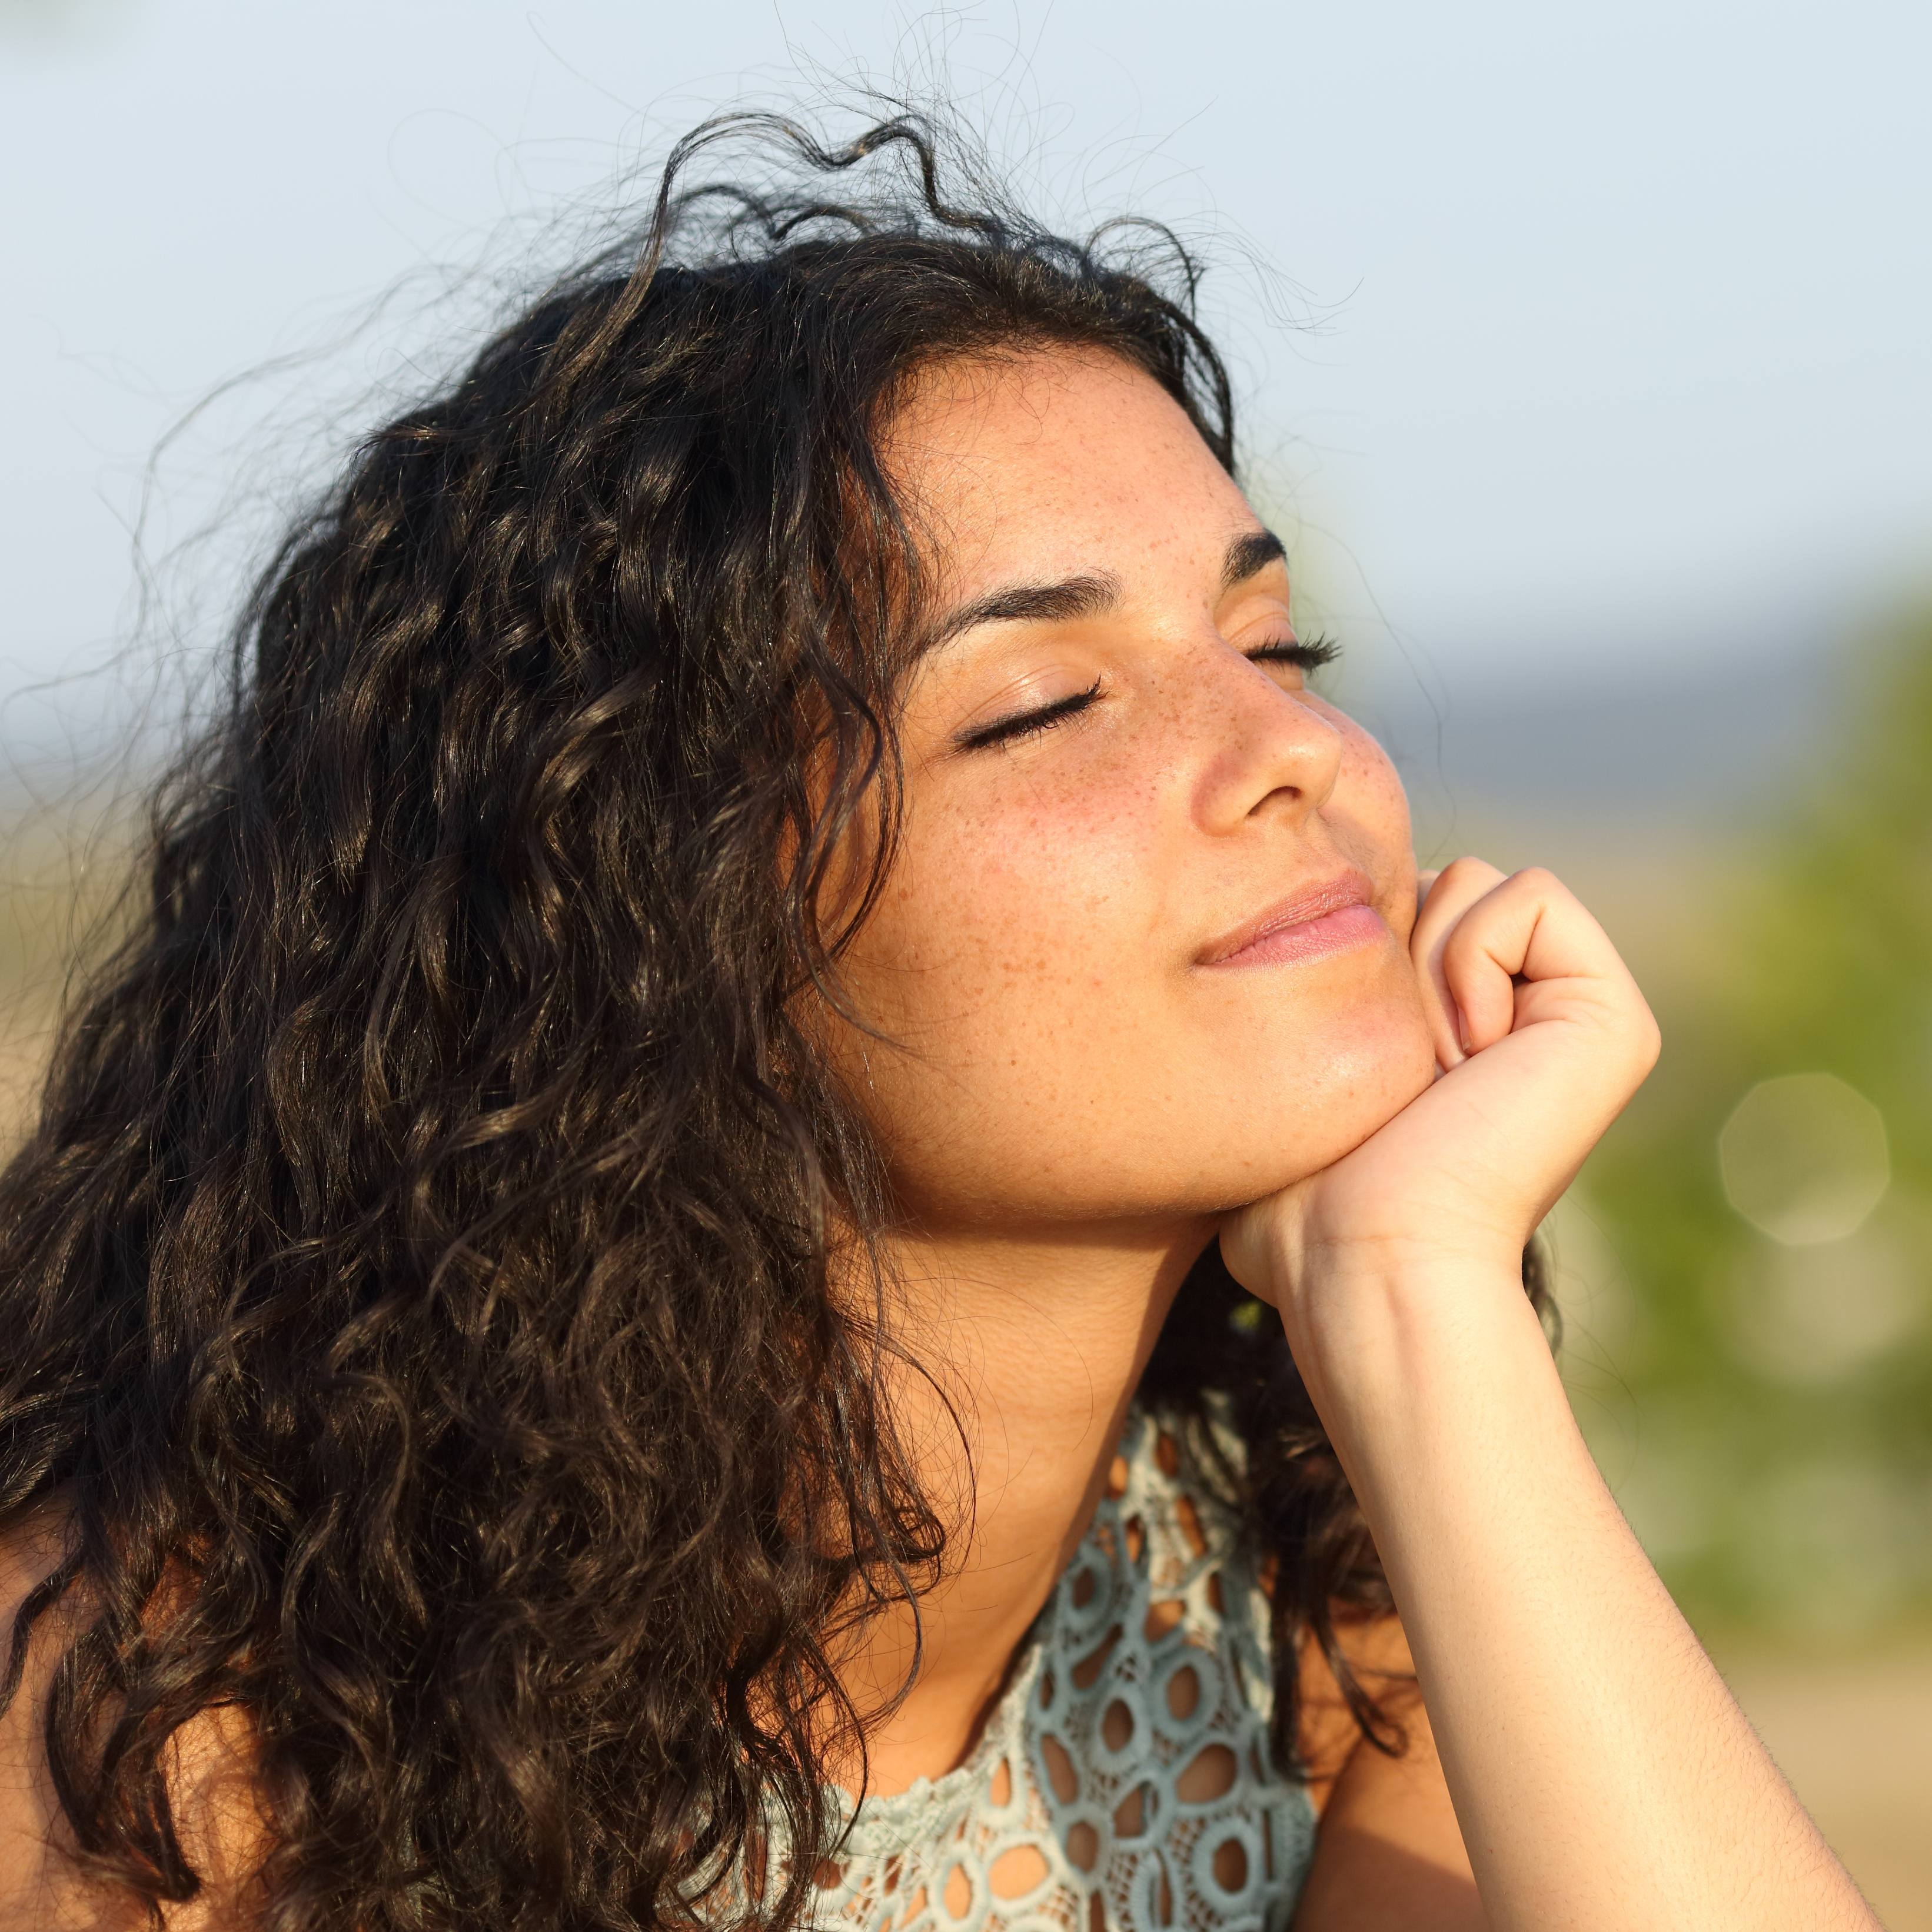 a young woman, perhaps older teenager, with light brown skin and long dark curly hair, smiling with her eyes closed and looking toward the sunshine